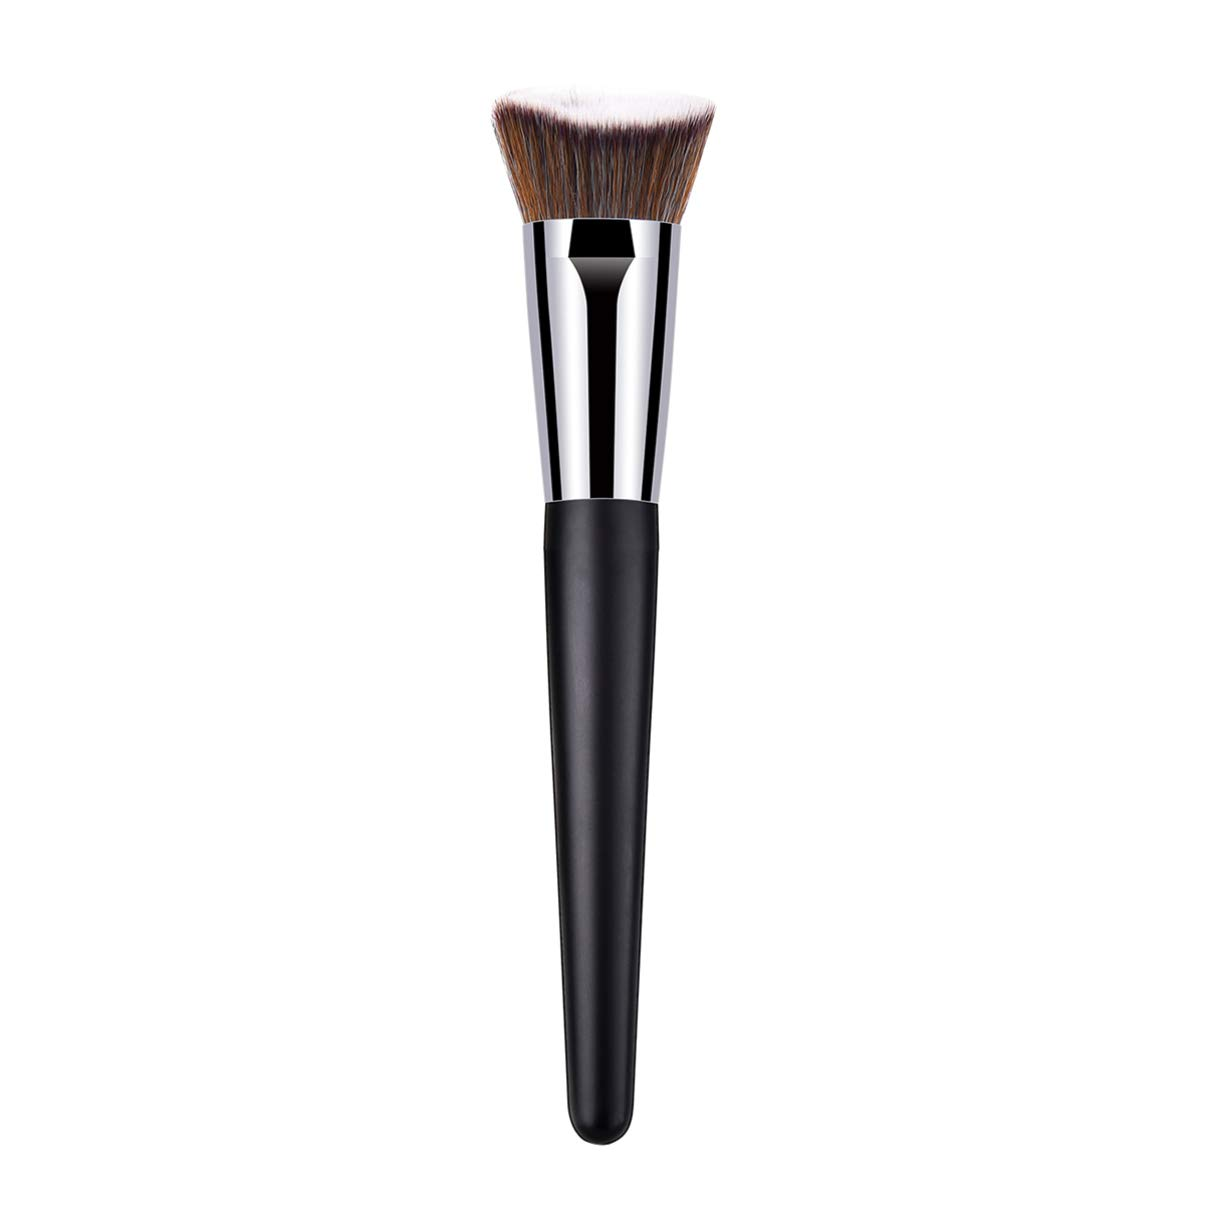 LEORX It is very popular Liquid Foundation Brush Flat Bombing free shipping Top fo Face Makeup Soft